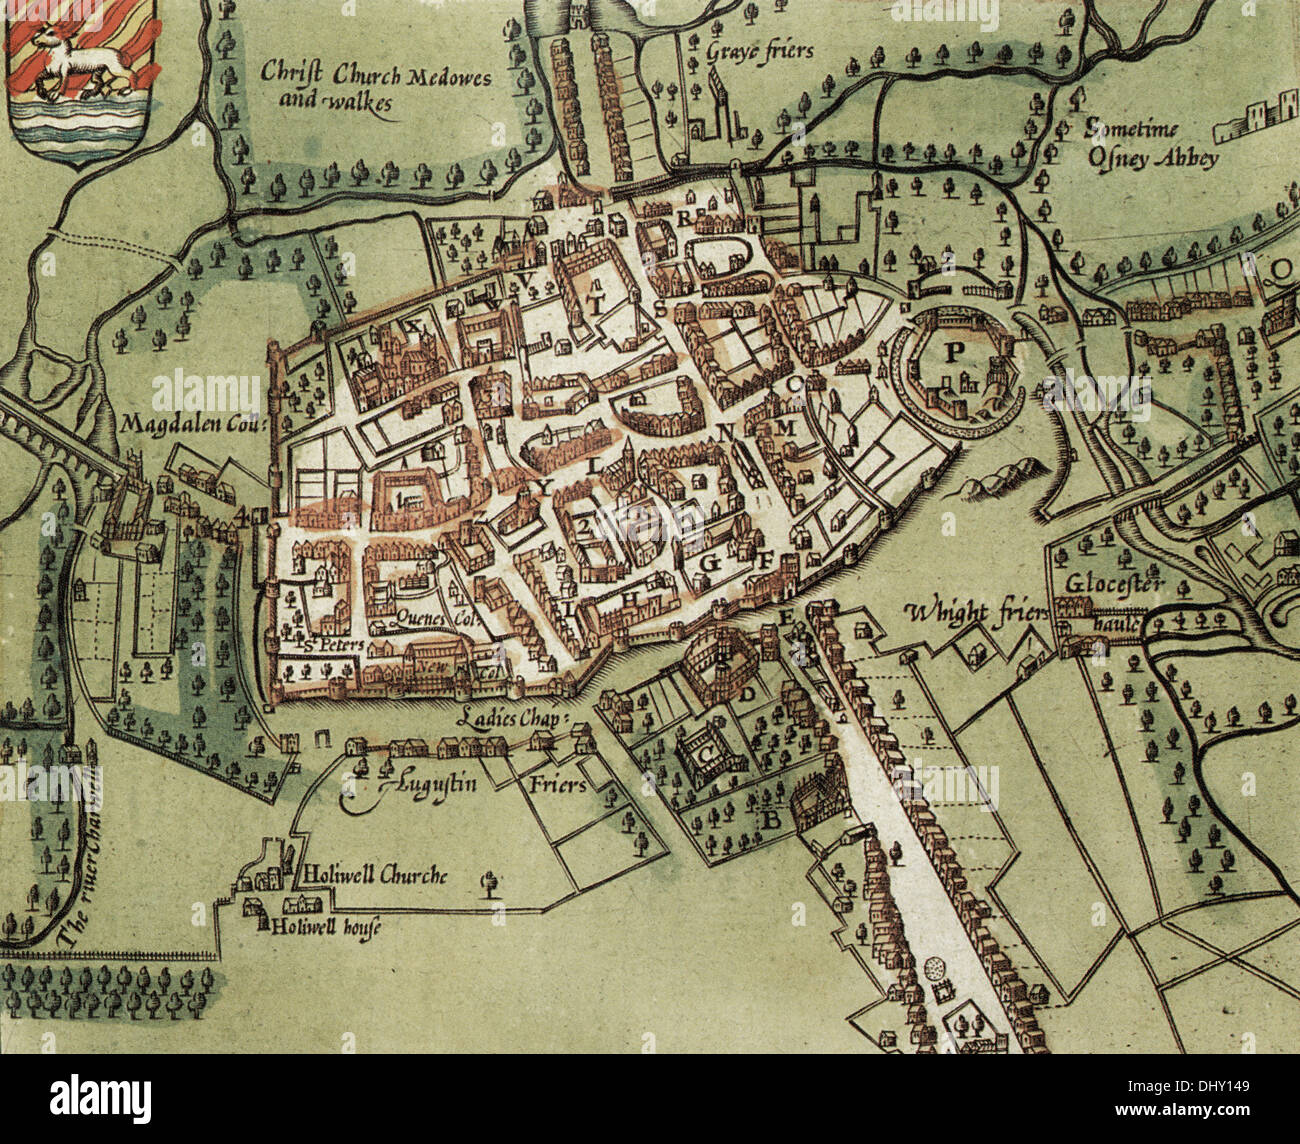 Old map of oxford england by john speed 1611 stock photo old map of oxford england by john speed 1611 gumiabroncs Gallery